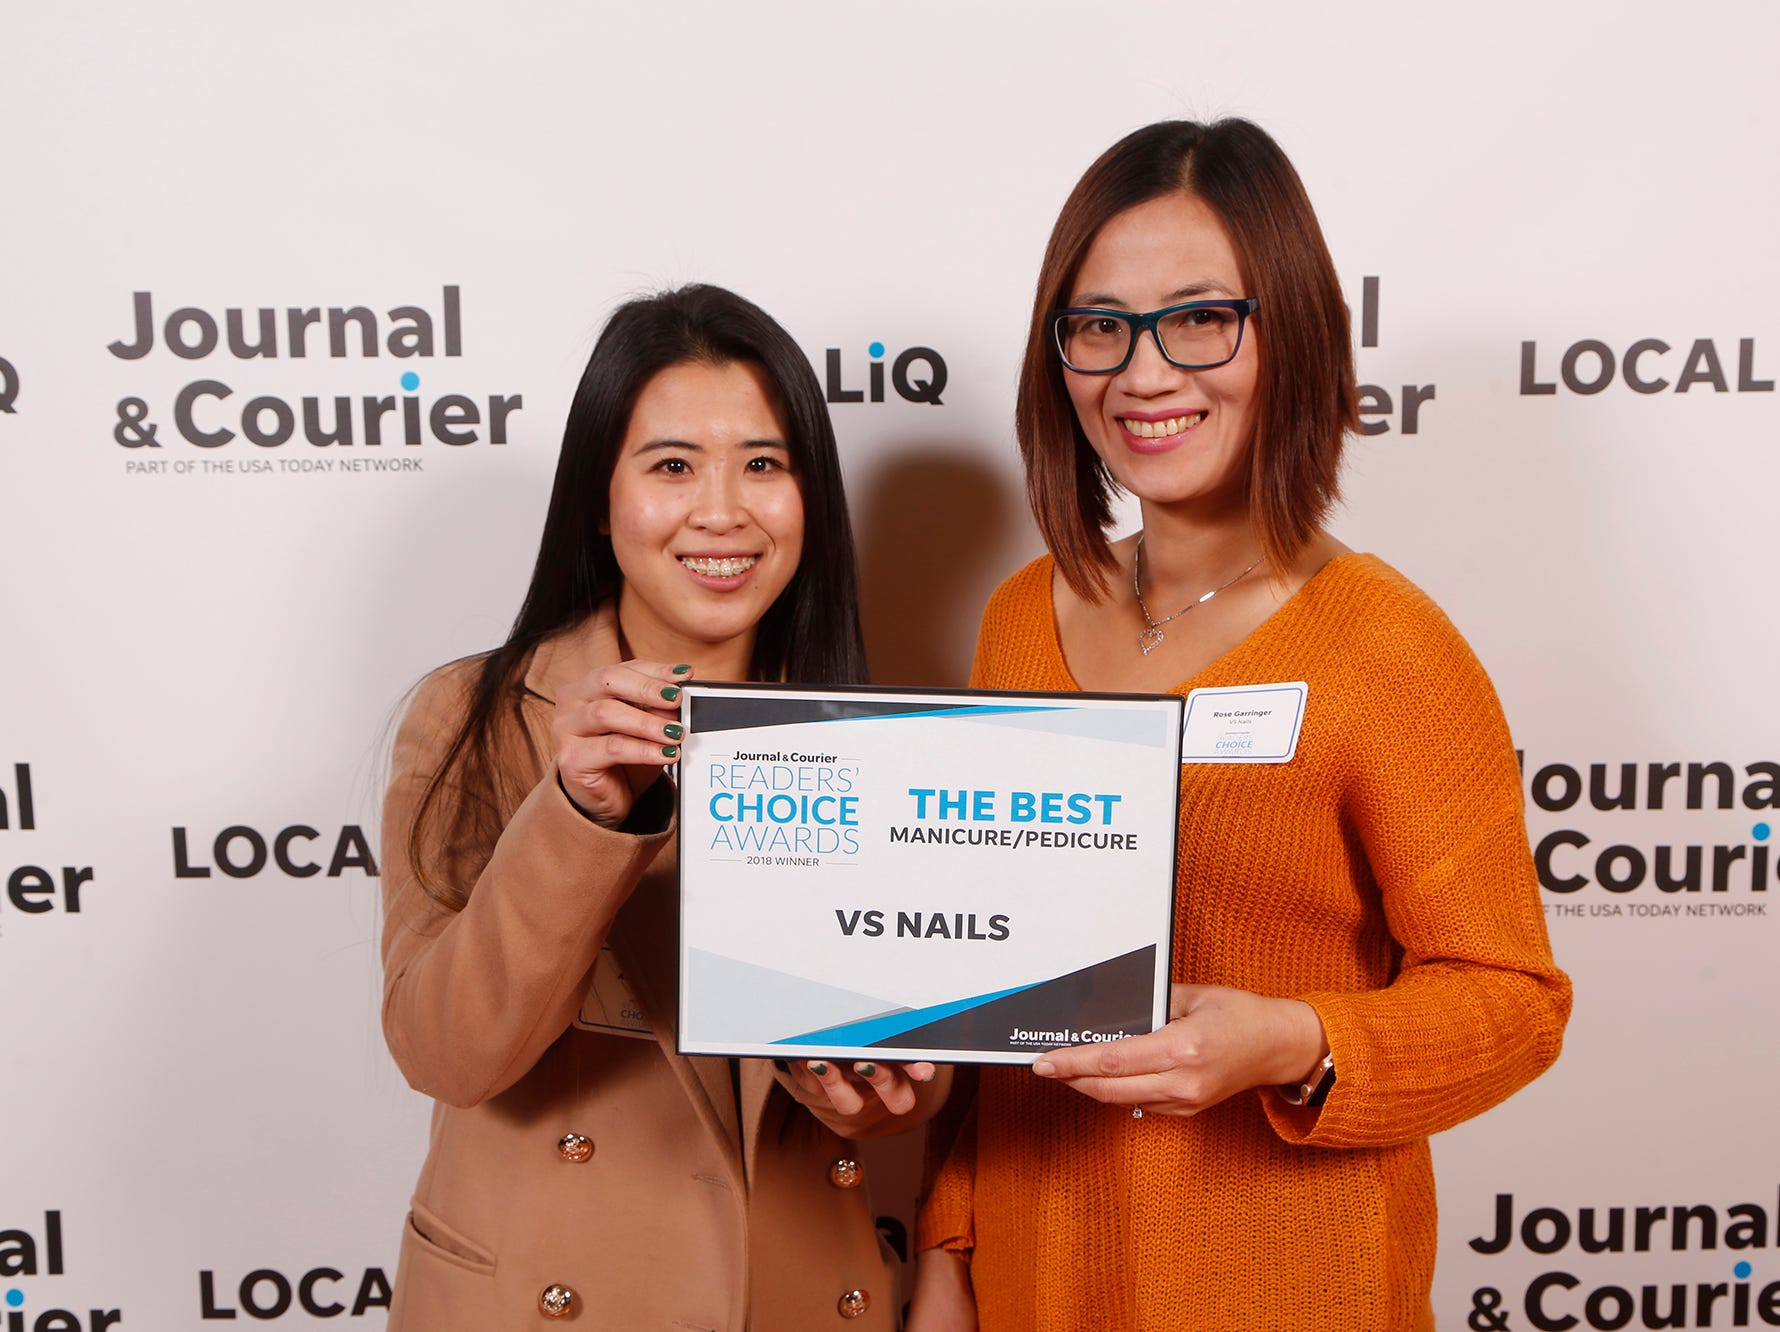 VS Nails, Journal & Courier Readers' Choice Awards winner for the best manicure/pedicure.